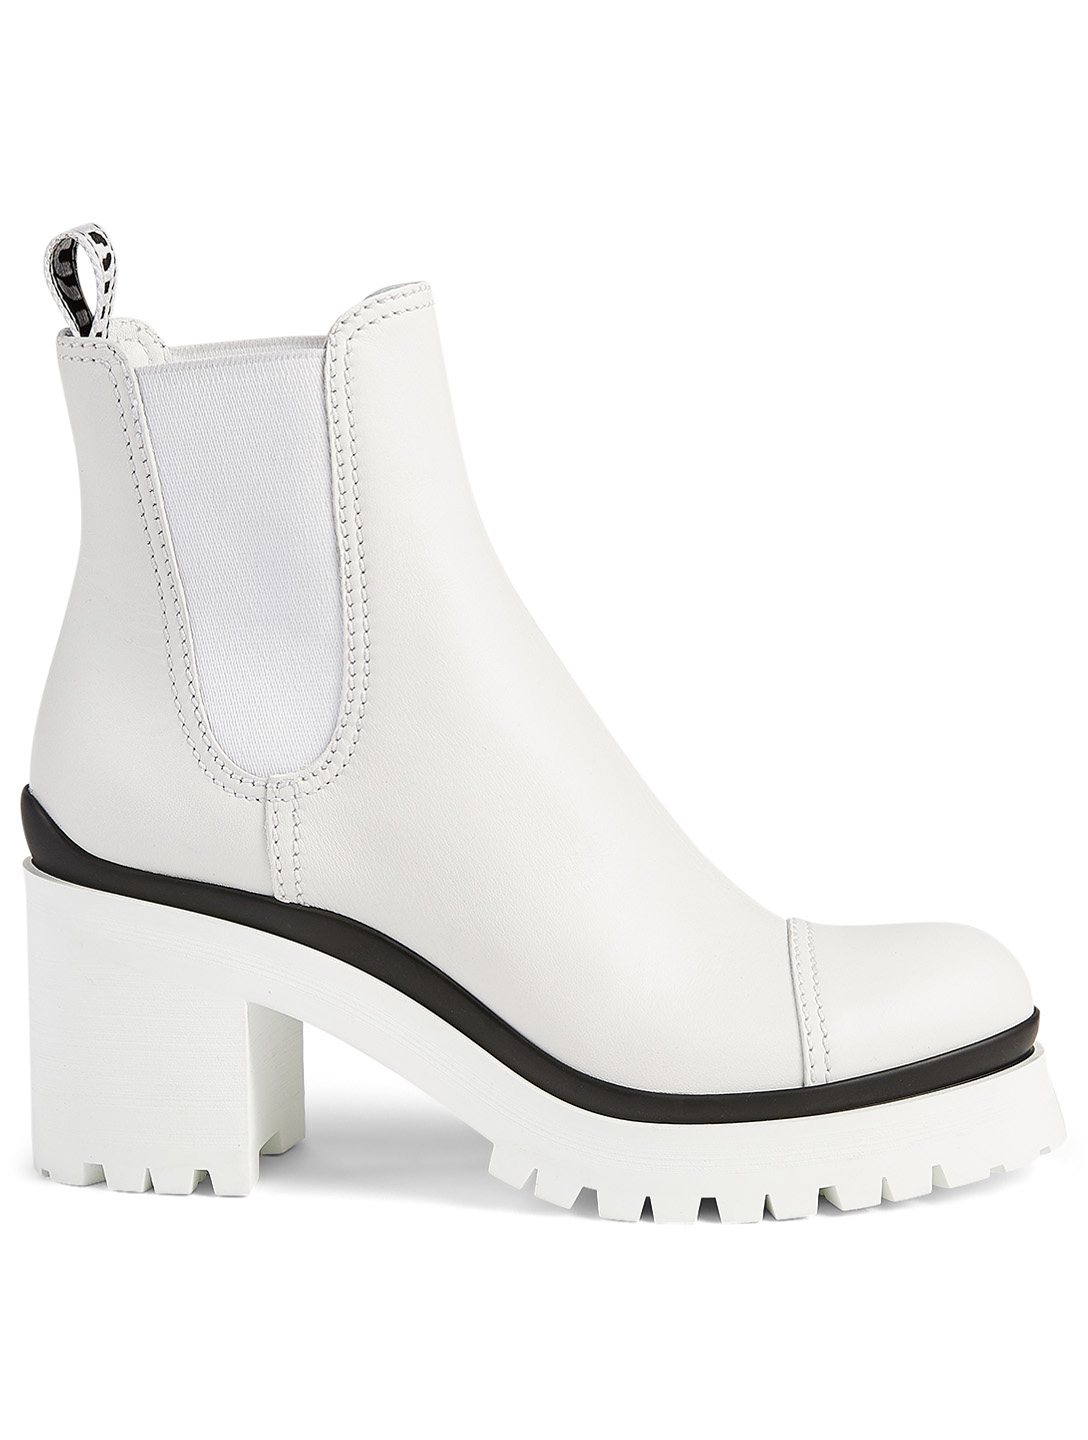 MIU MIU Leather Heeled Ankle Boots Women's White